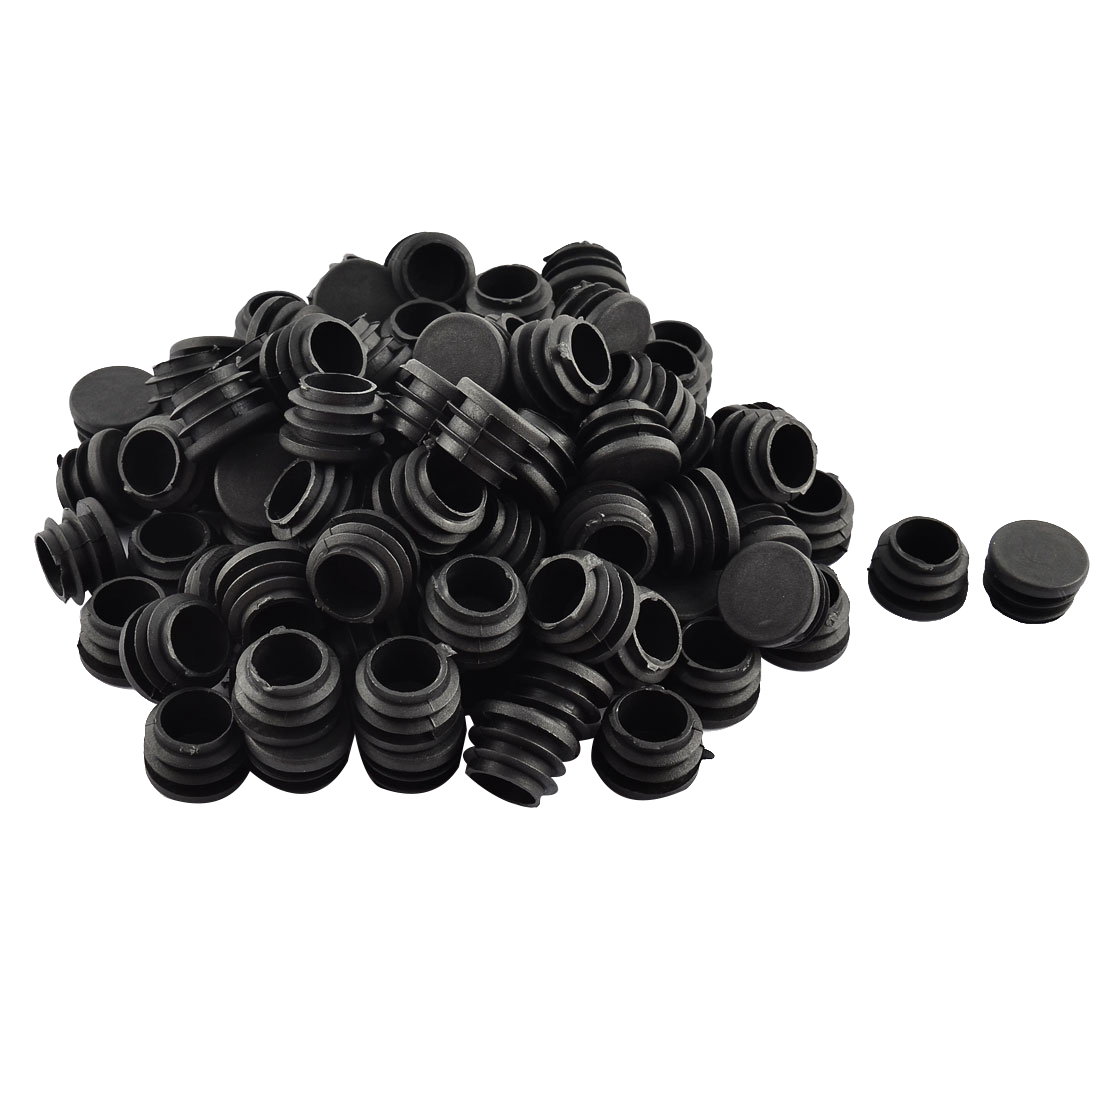 Floor Protect Plastic Round Chair Leg Pipe Tube Insert Blanking Caps 23mm Dia 100pcs